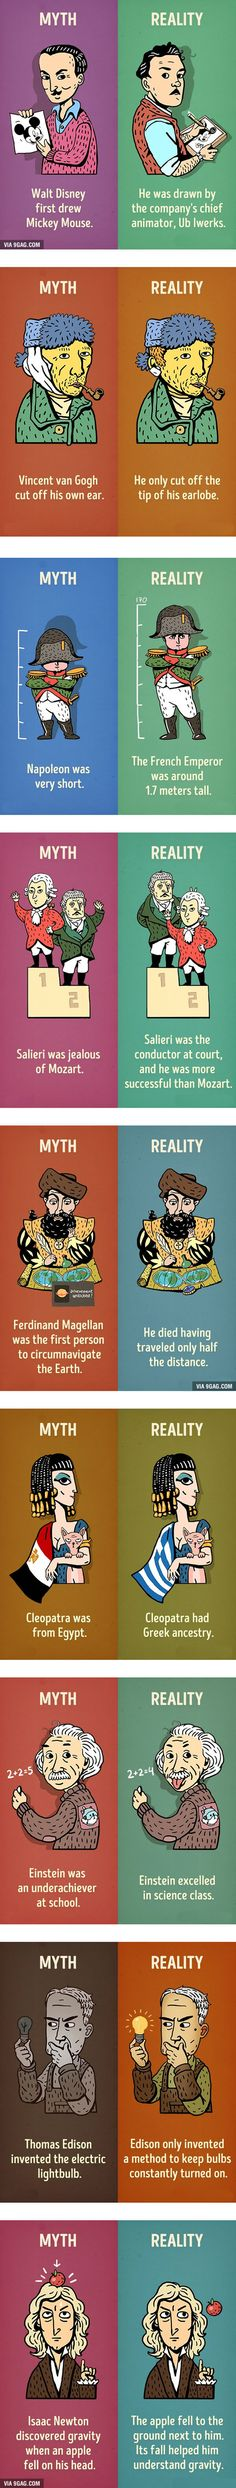 Nine historical myths we need to stop believing